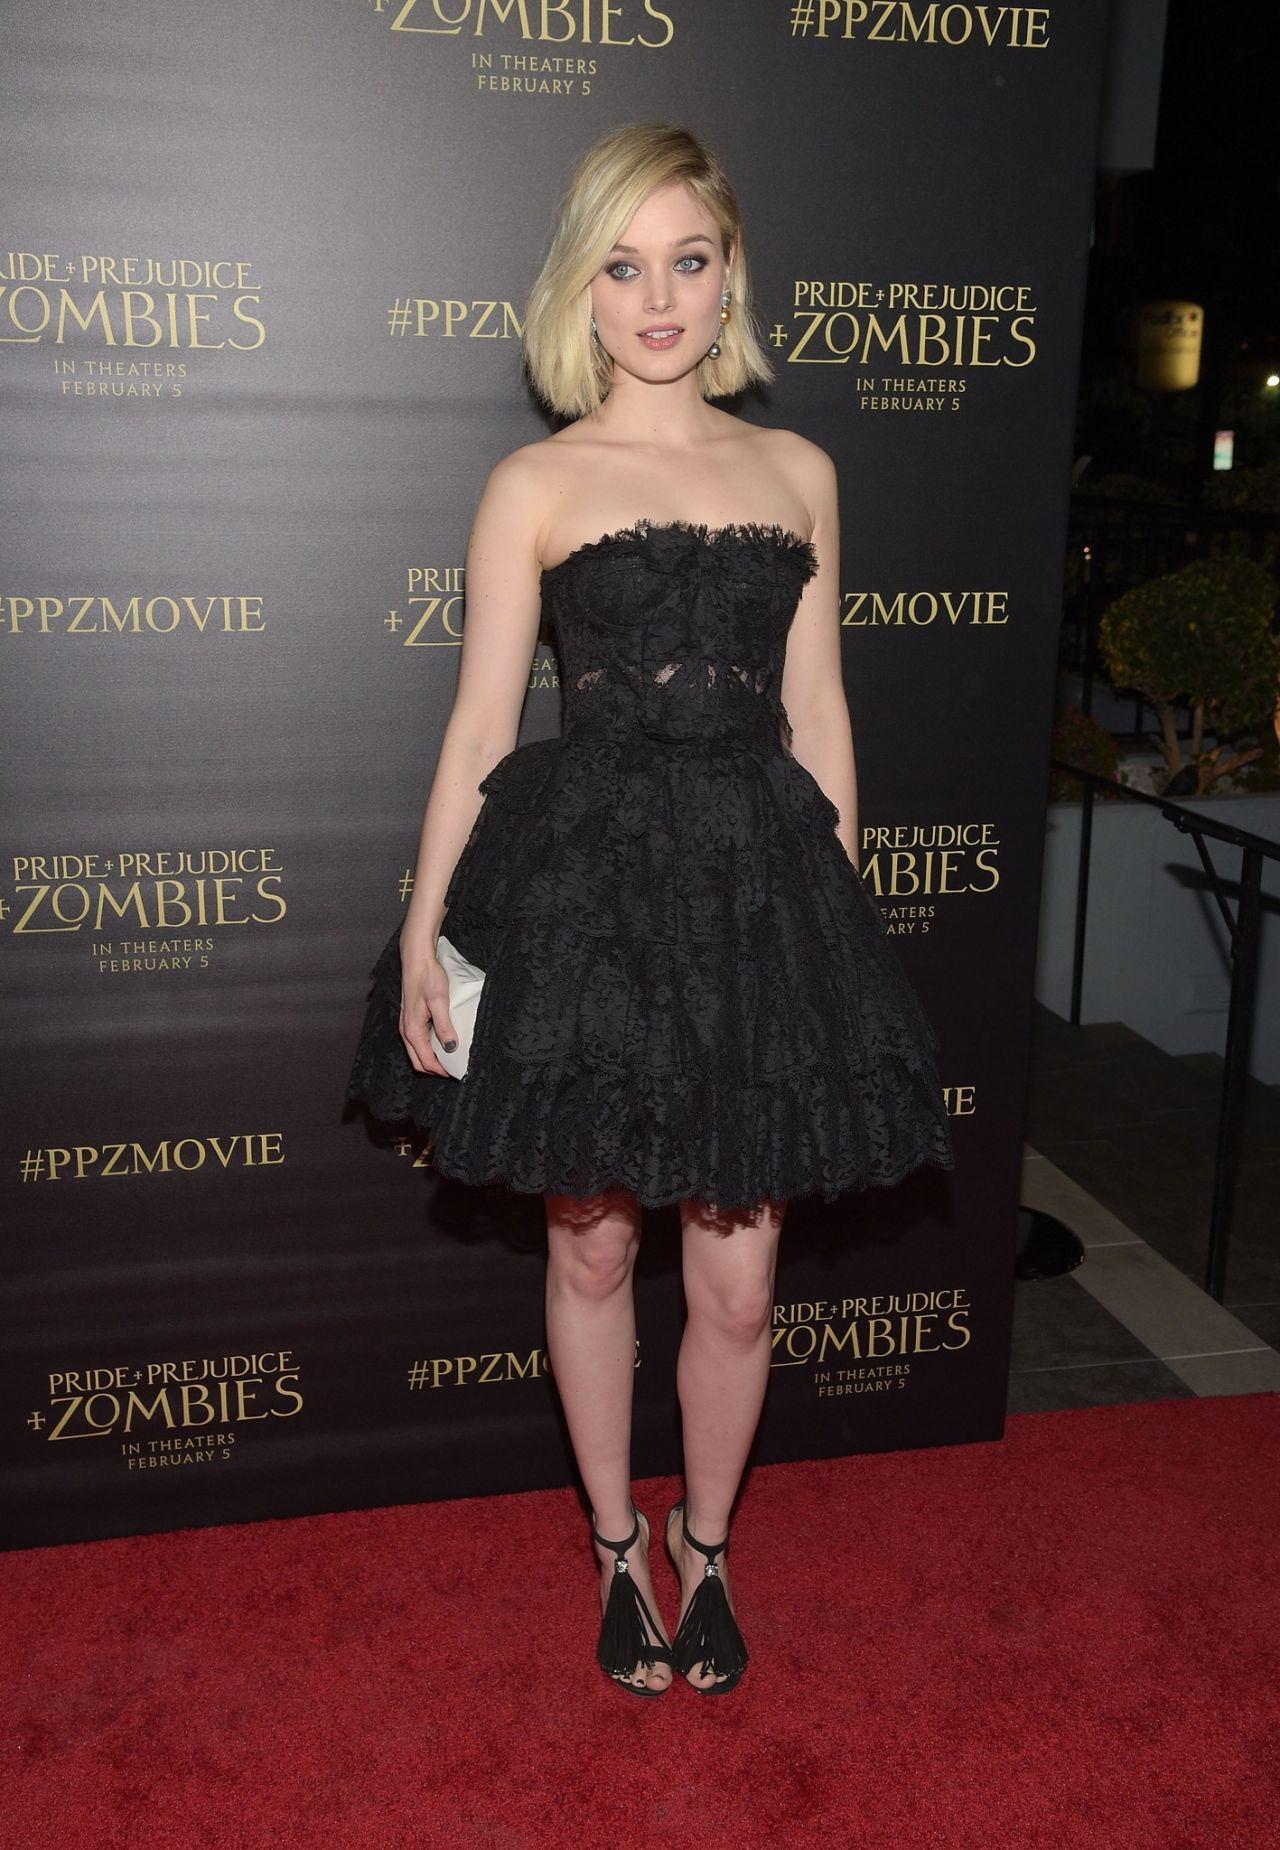 bella-heathcote-on-red-carpet-pride-and-prejudice-and-zombies-premiere-in-los-angeles-3